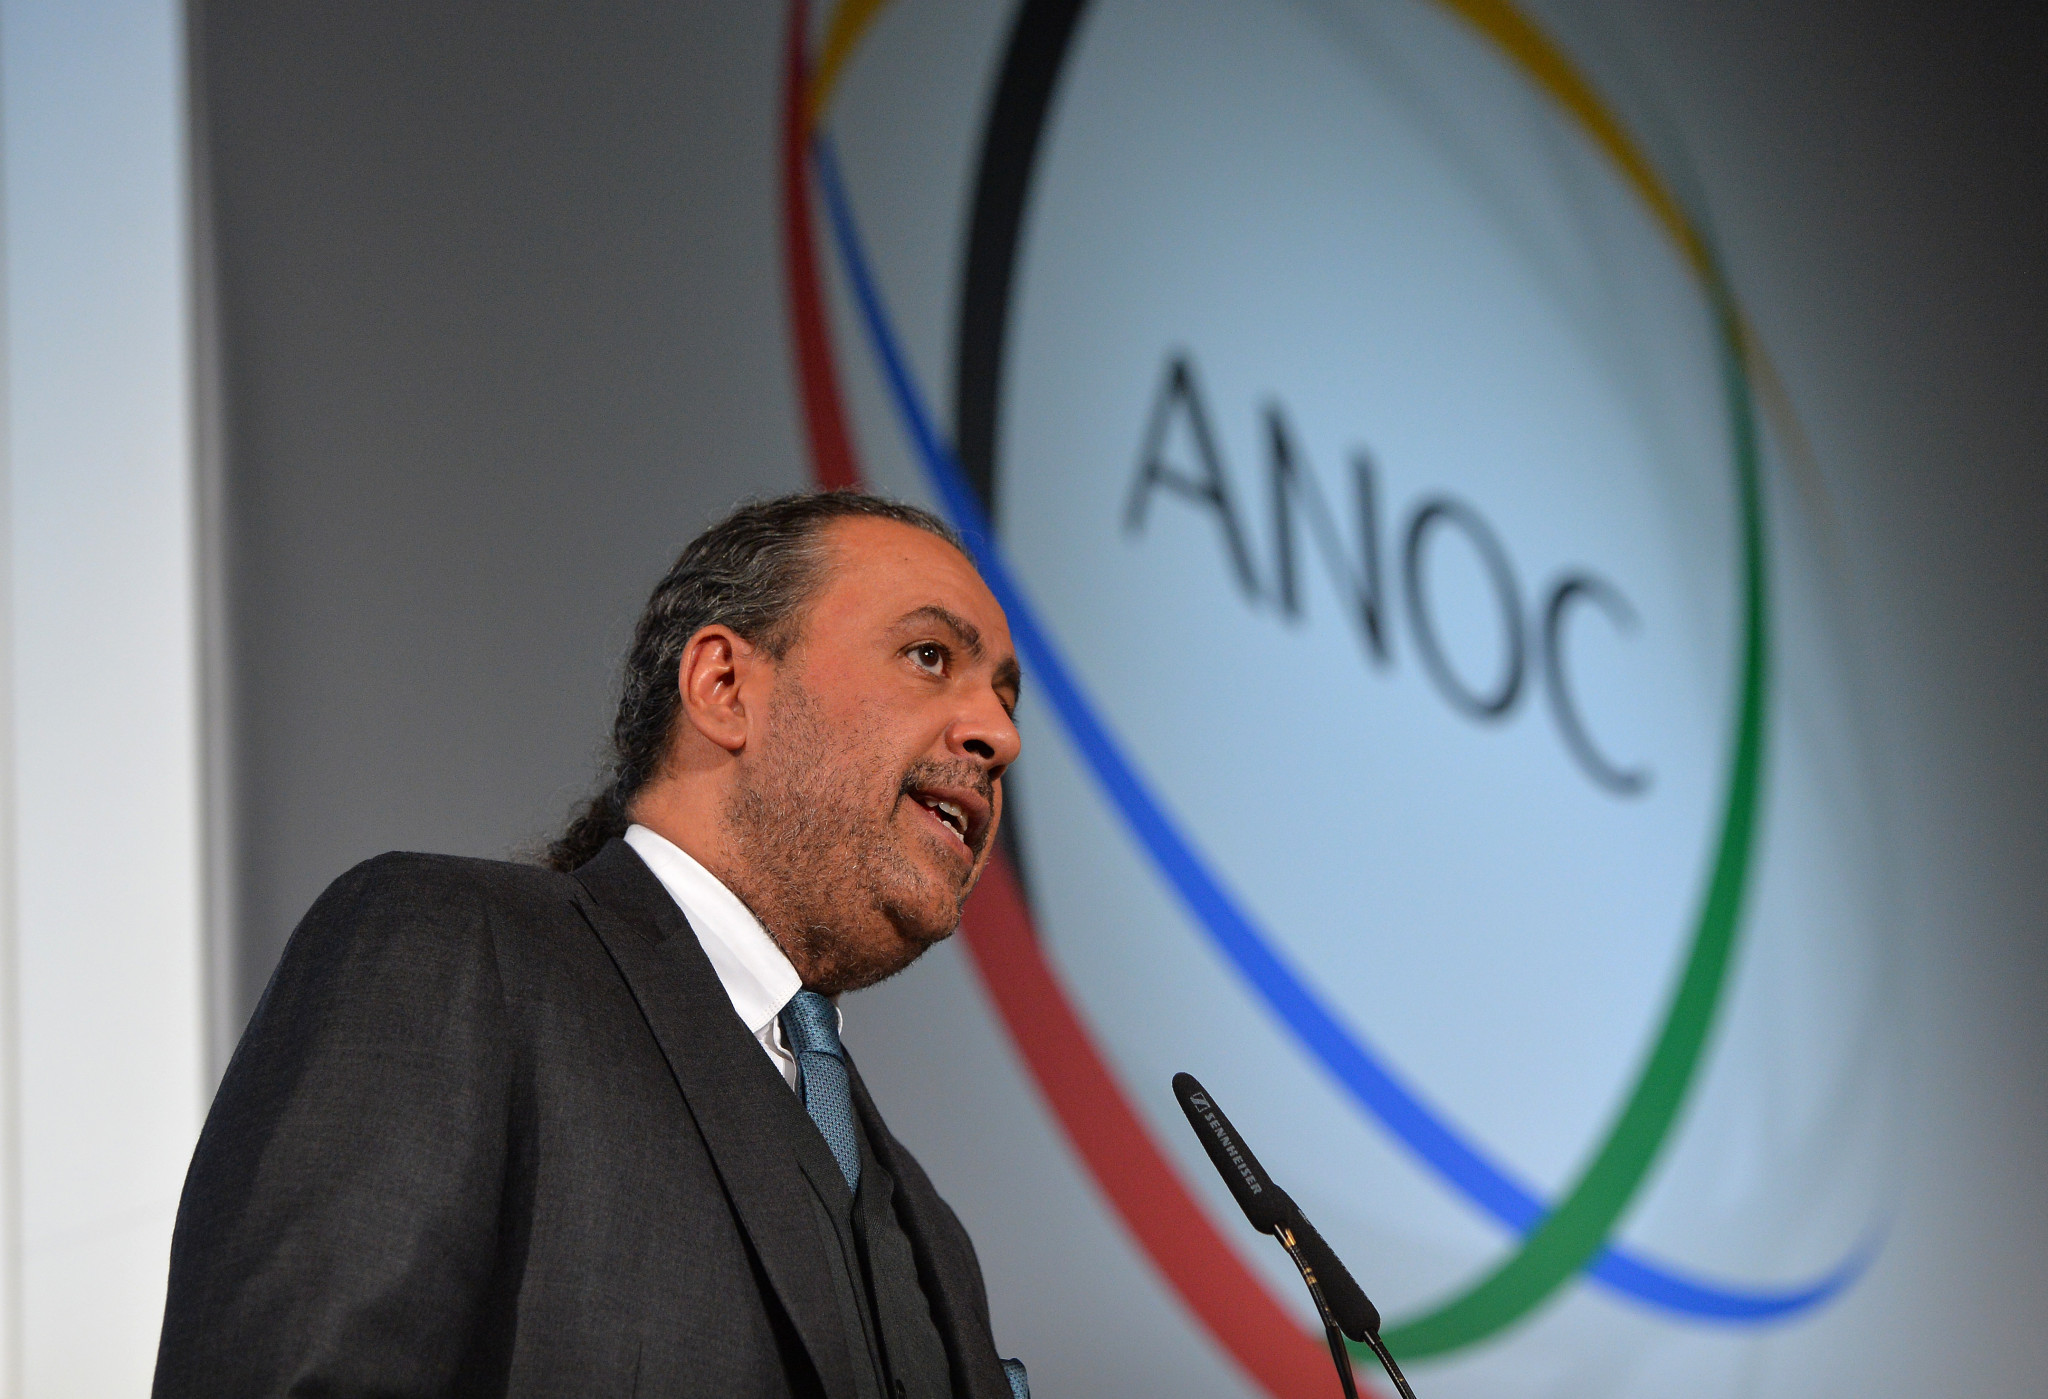 Sheikh Ahmad Al-Fahad Al-Sabah is set to be re-elected as ANOC President at its General Assembly in Tokyo later this month as he is the only candidate standing ©Getty Images